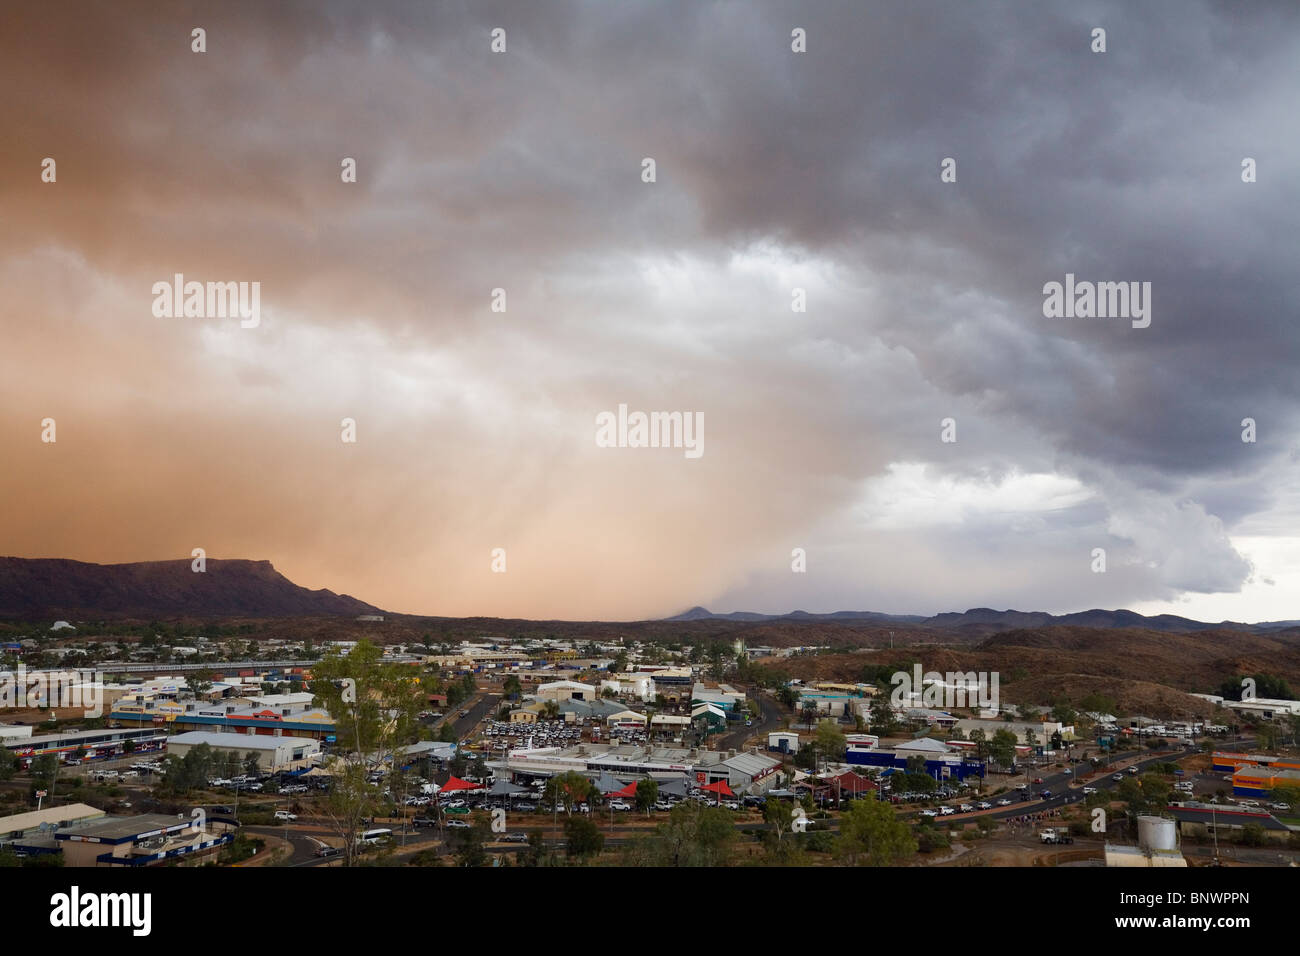 A dust storm approaches the outback town of Alice Springs, Northern Territory, AUSTRALIA. - Stock Image